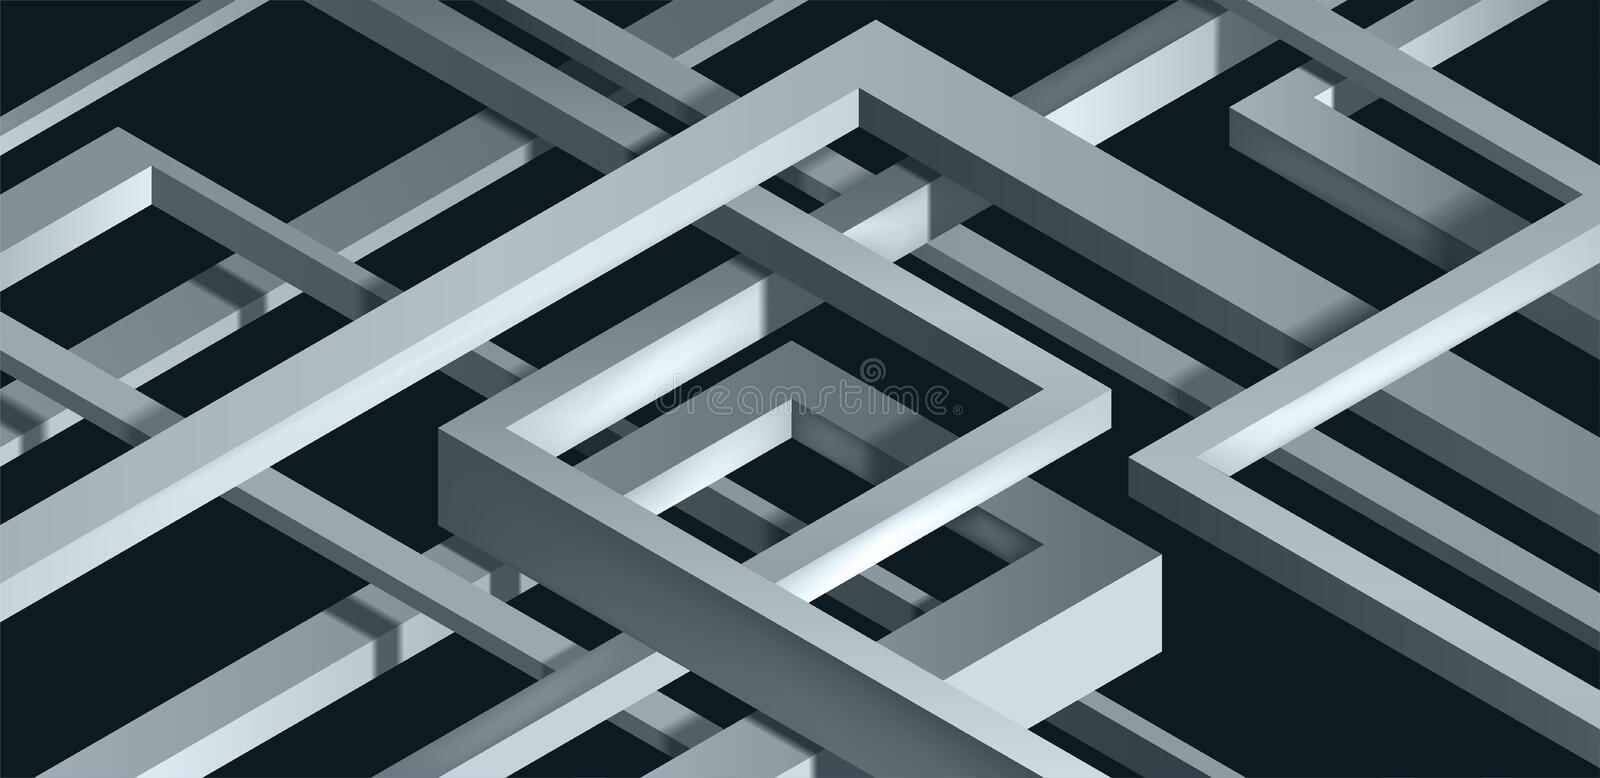 3D Twisted Composition of abstract plexus forms. Labyrinth shapes. Vector unreal construction on dark background royalty free illustration